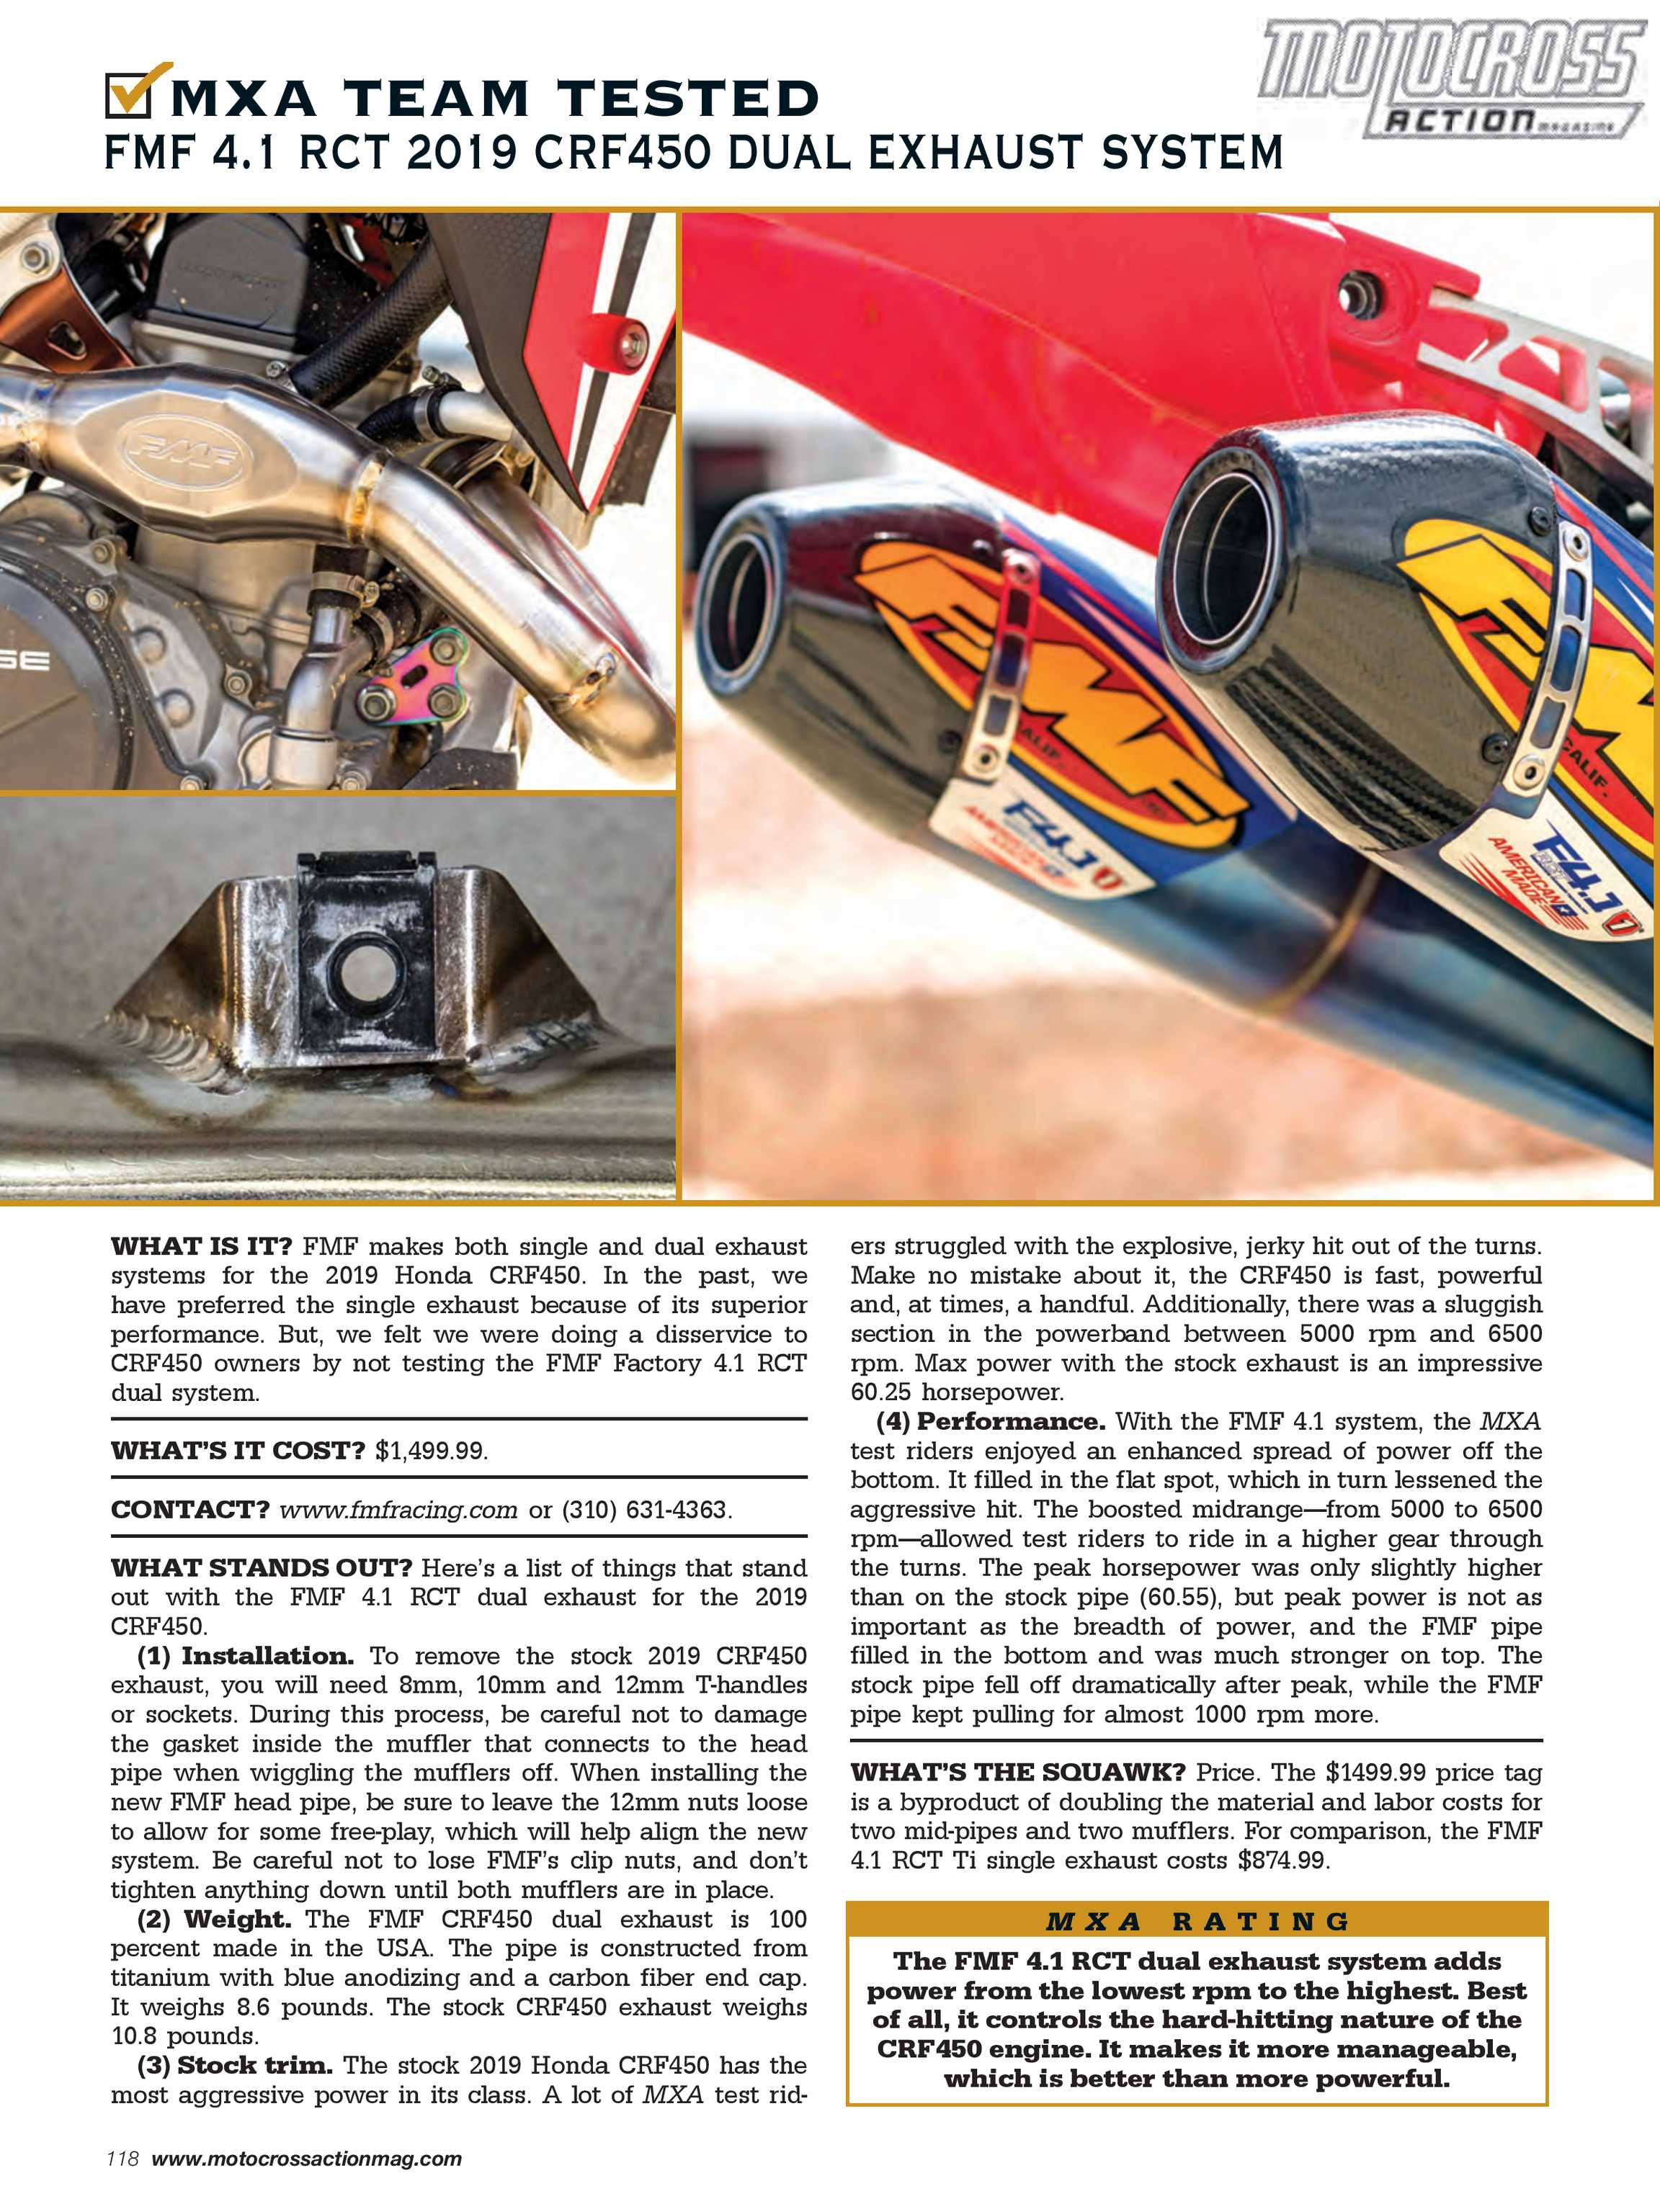 Last Sunday In August Felt More Like >> Motocross Action Magazine August 2019 Page 118